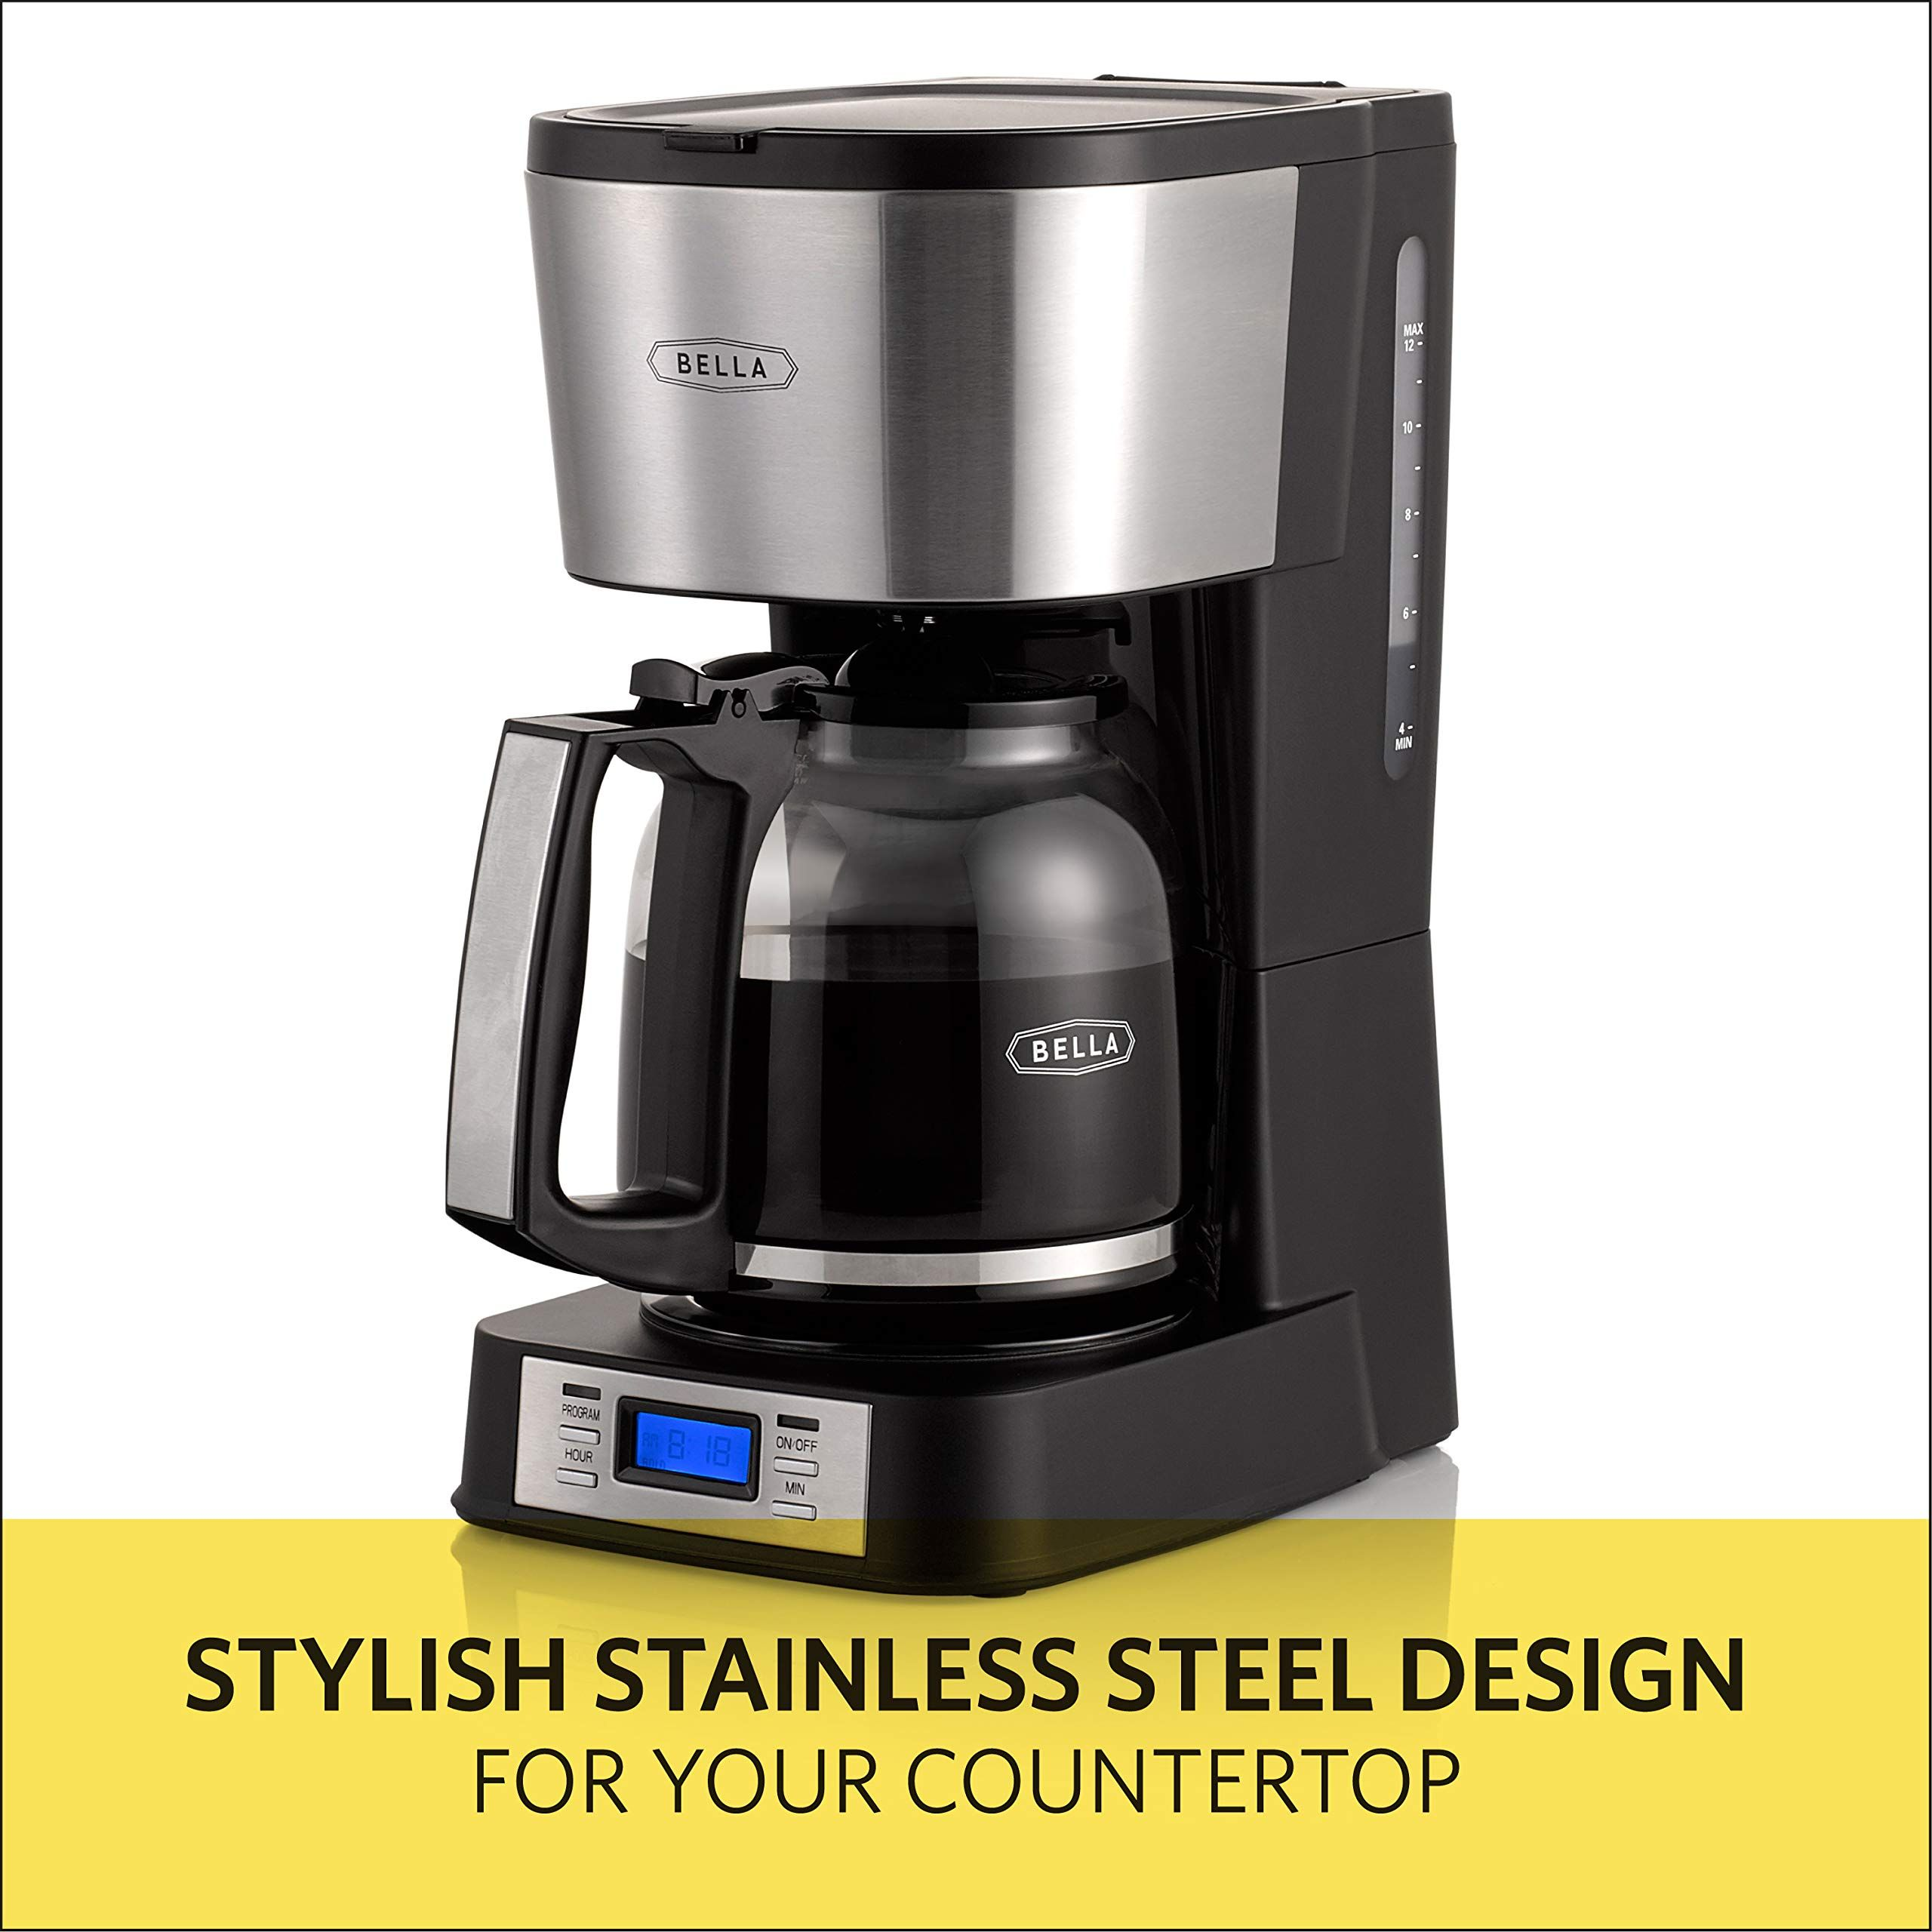 Bella 14755 Strength Selector Stainless In 2020 Coffee Maker Brewing Stainless